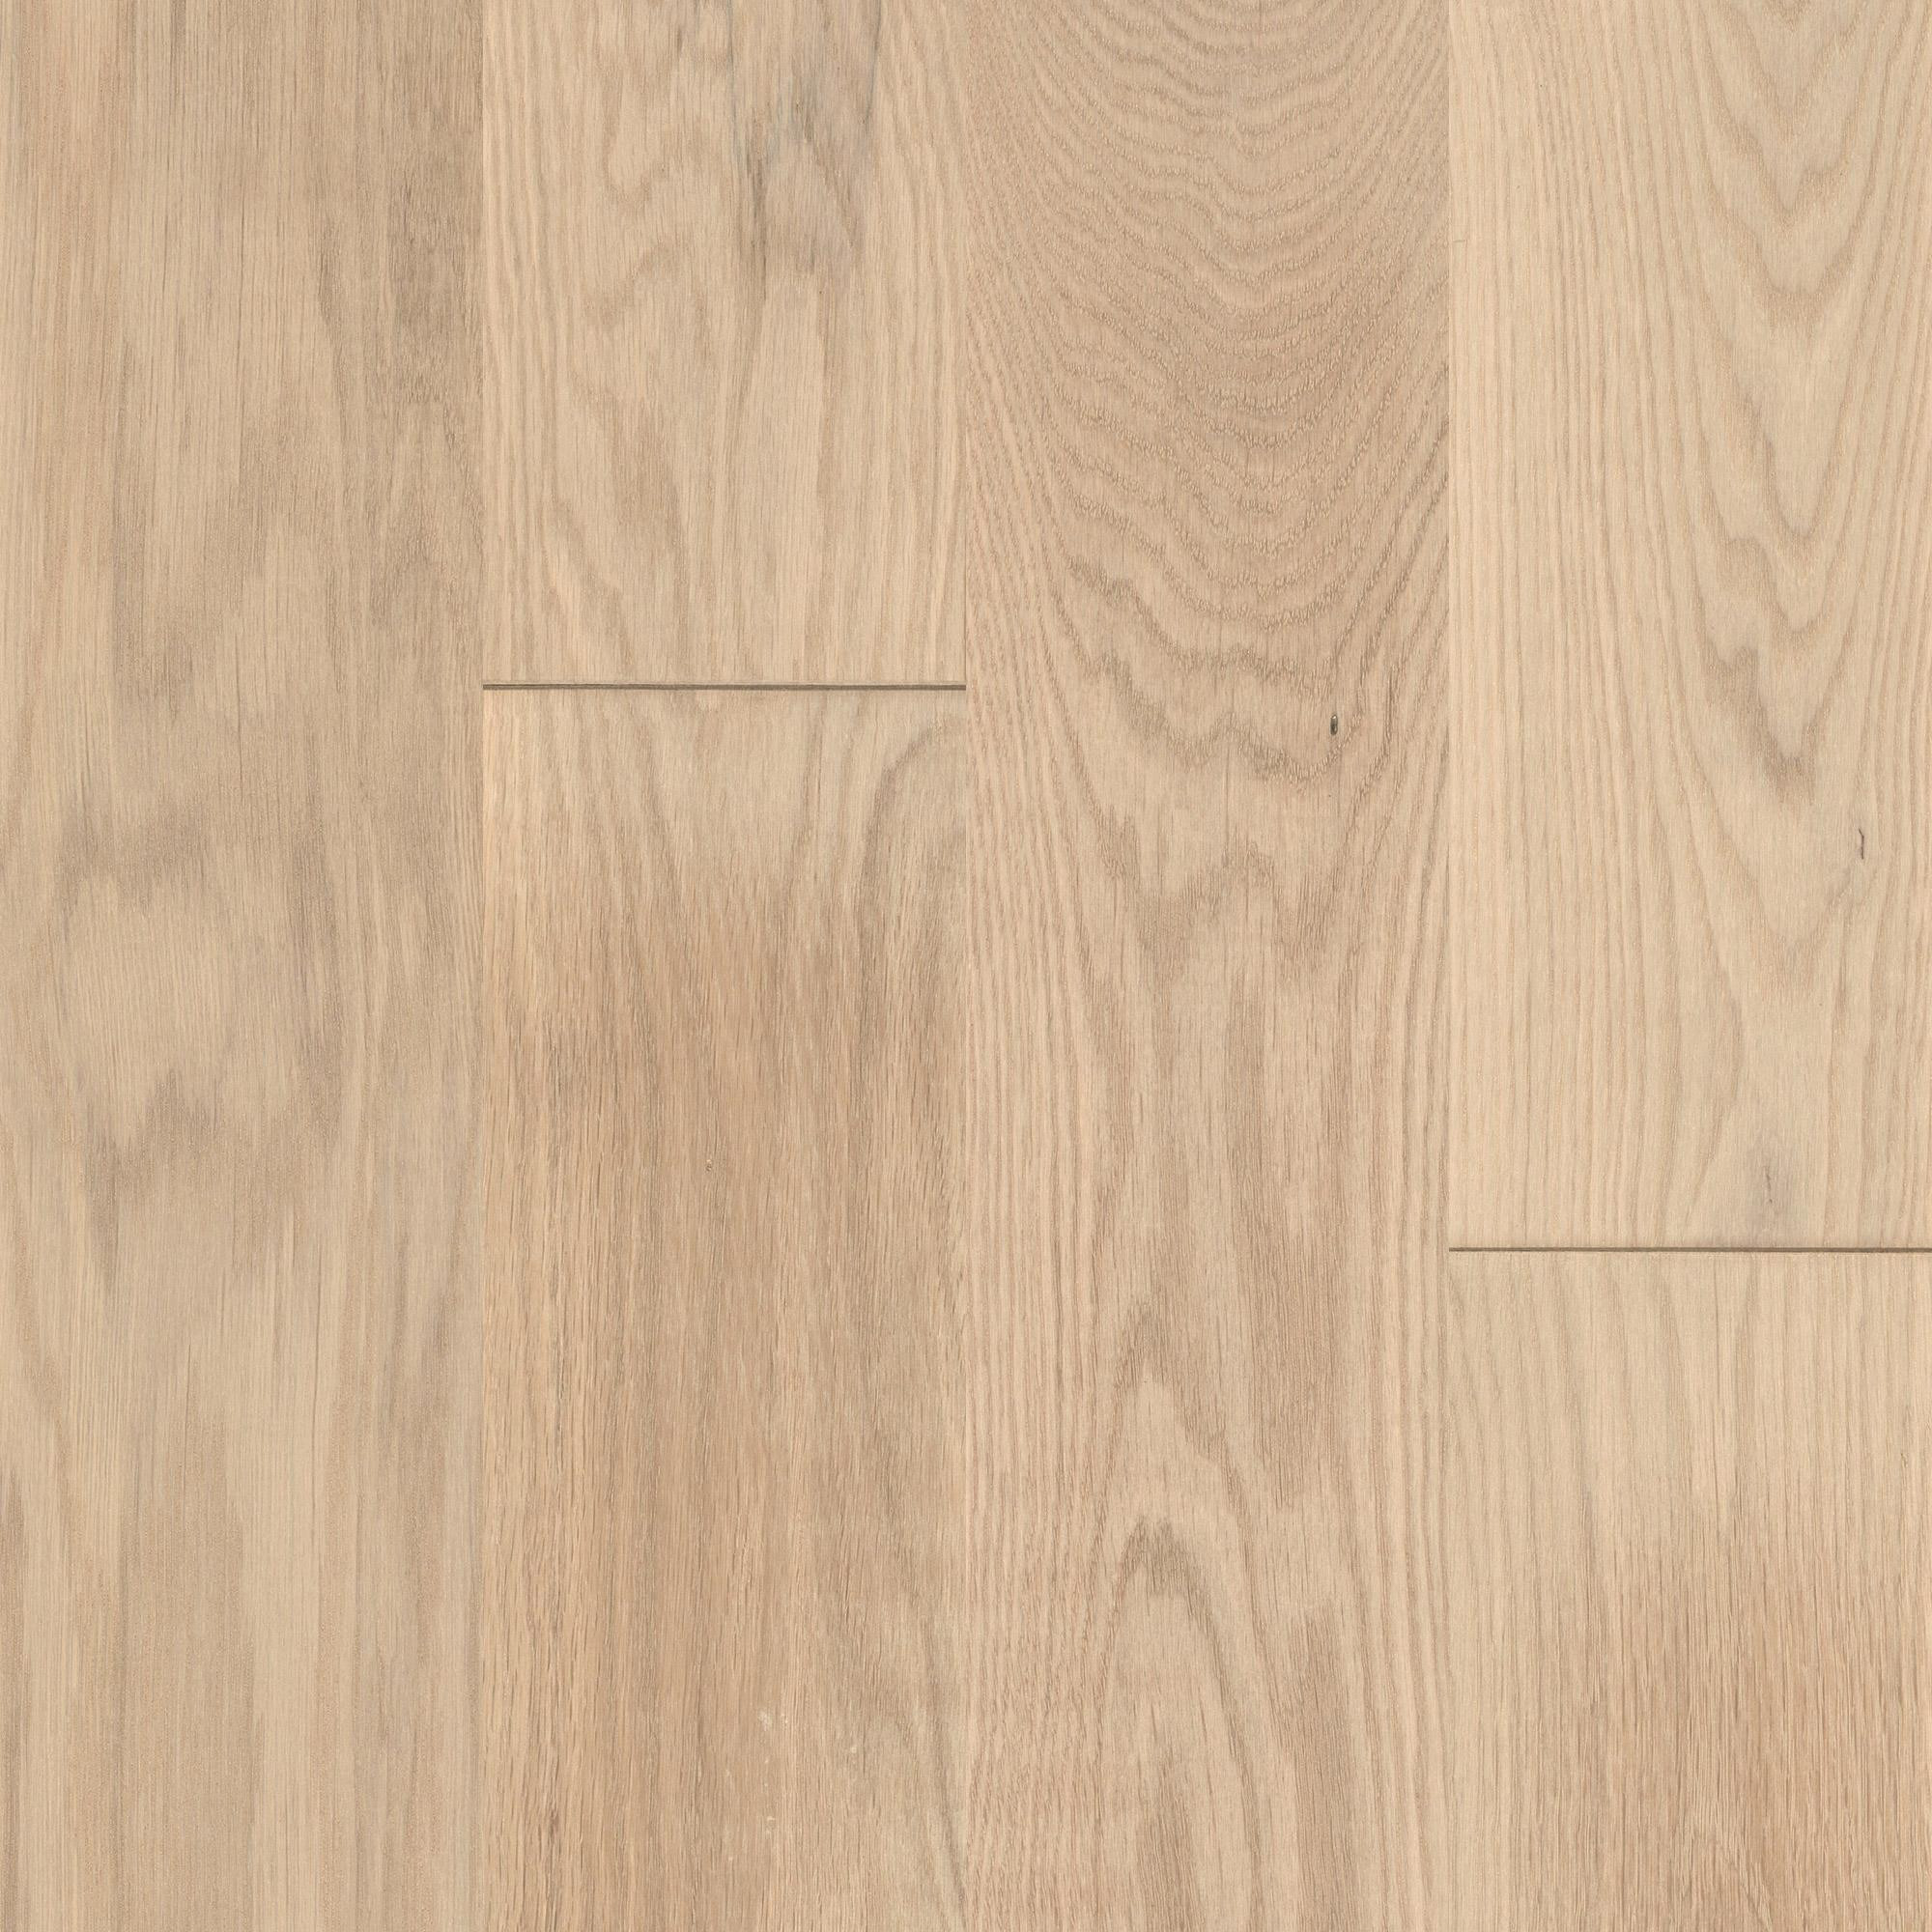 engineered hardwood flooring manufacturers canada of mullican castillian oak glacier 5 wide solid hardwood flooring for oak glacier castillian 5 x 55 approved